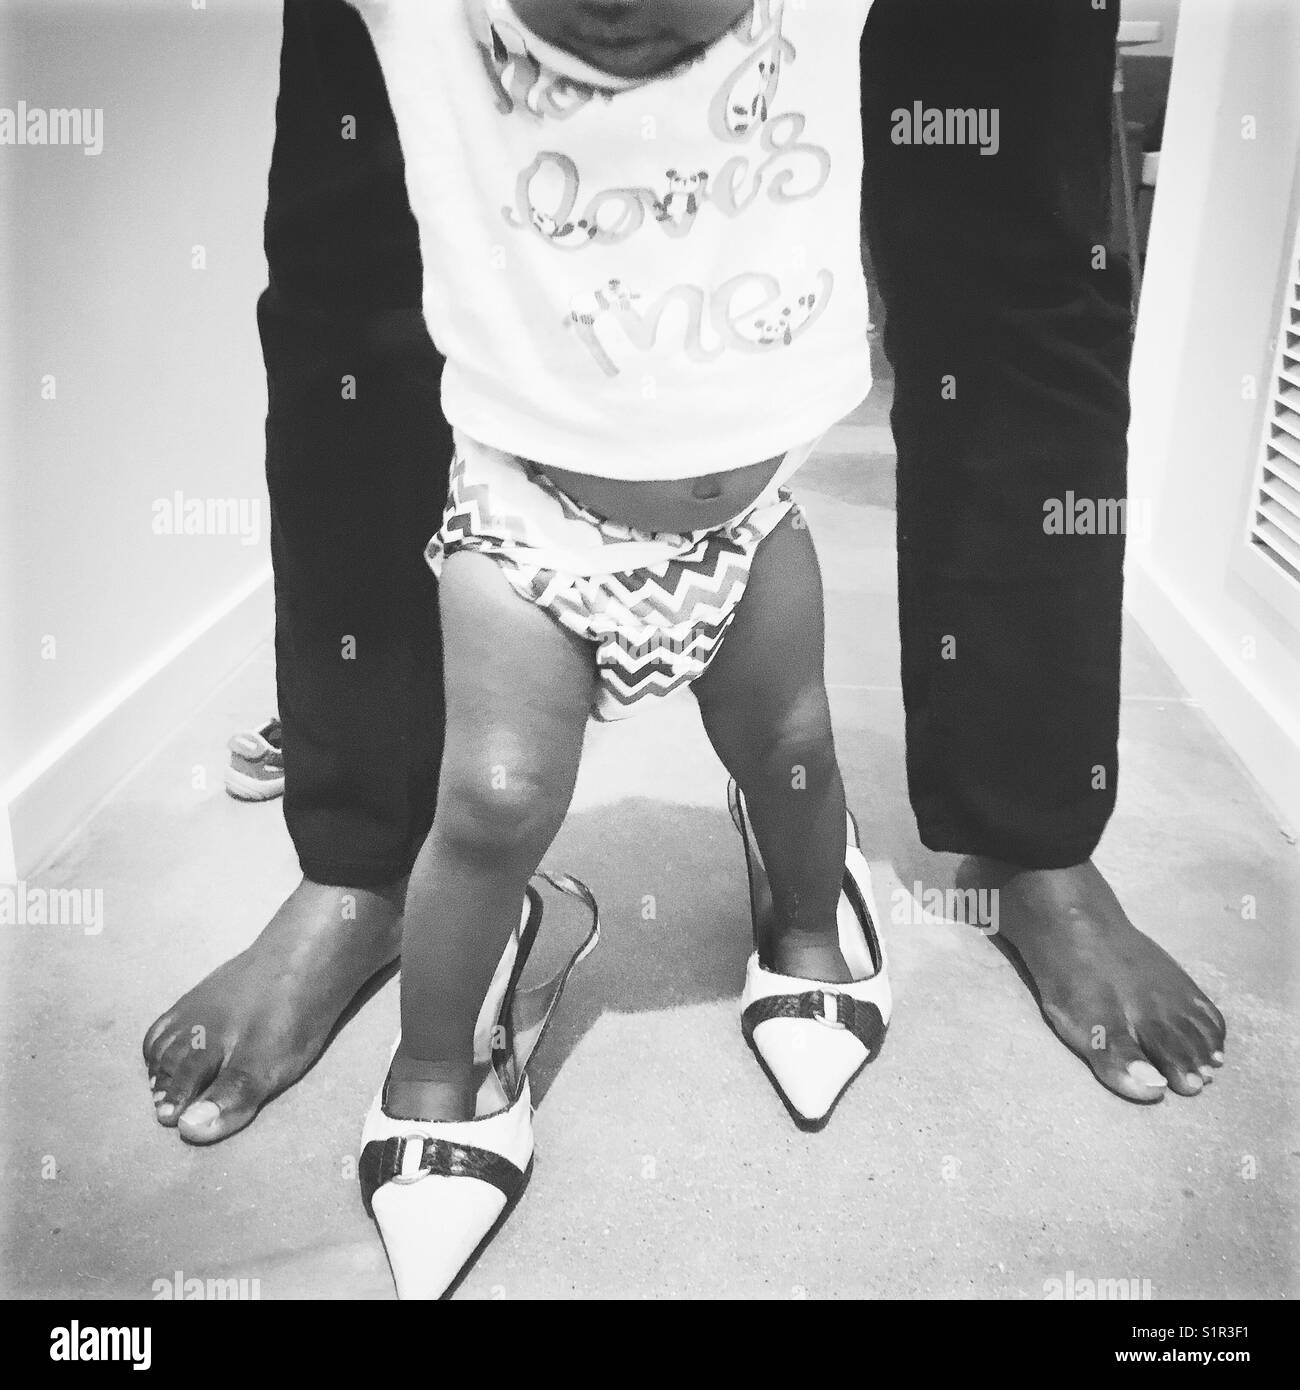 Baby walking in mommy shoes - Stock Image